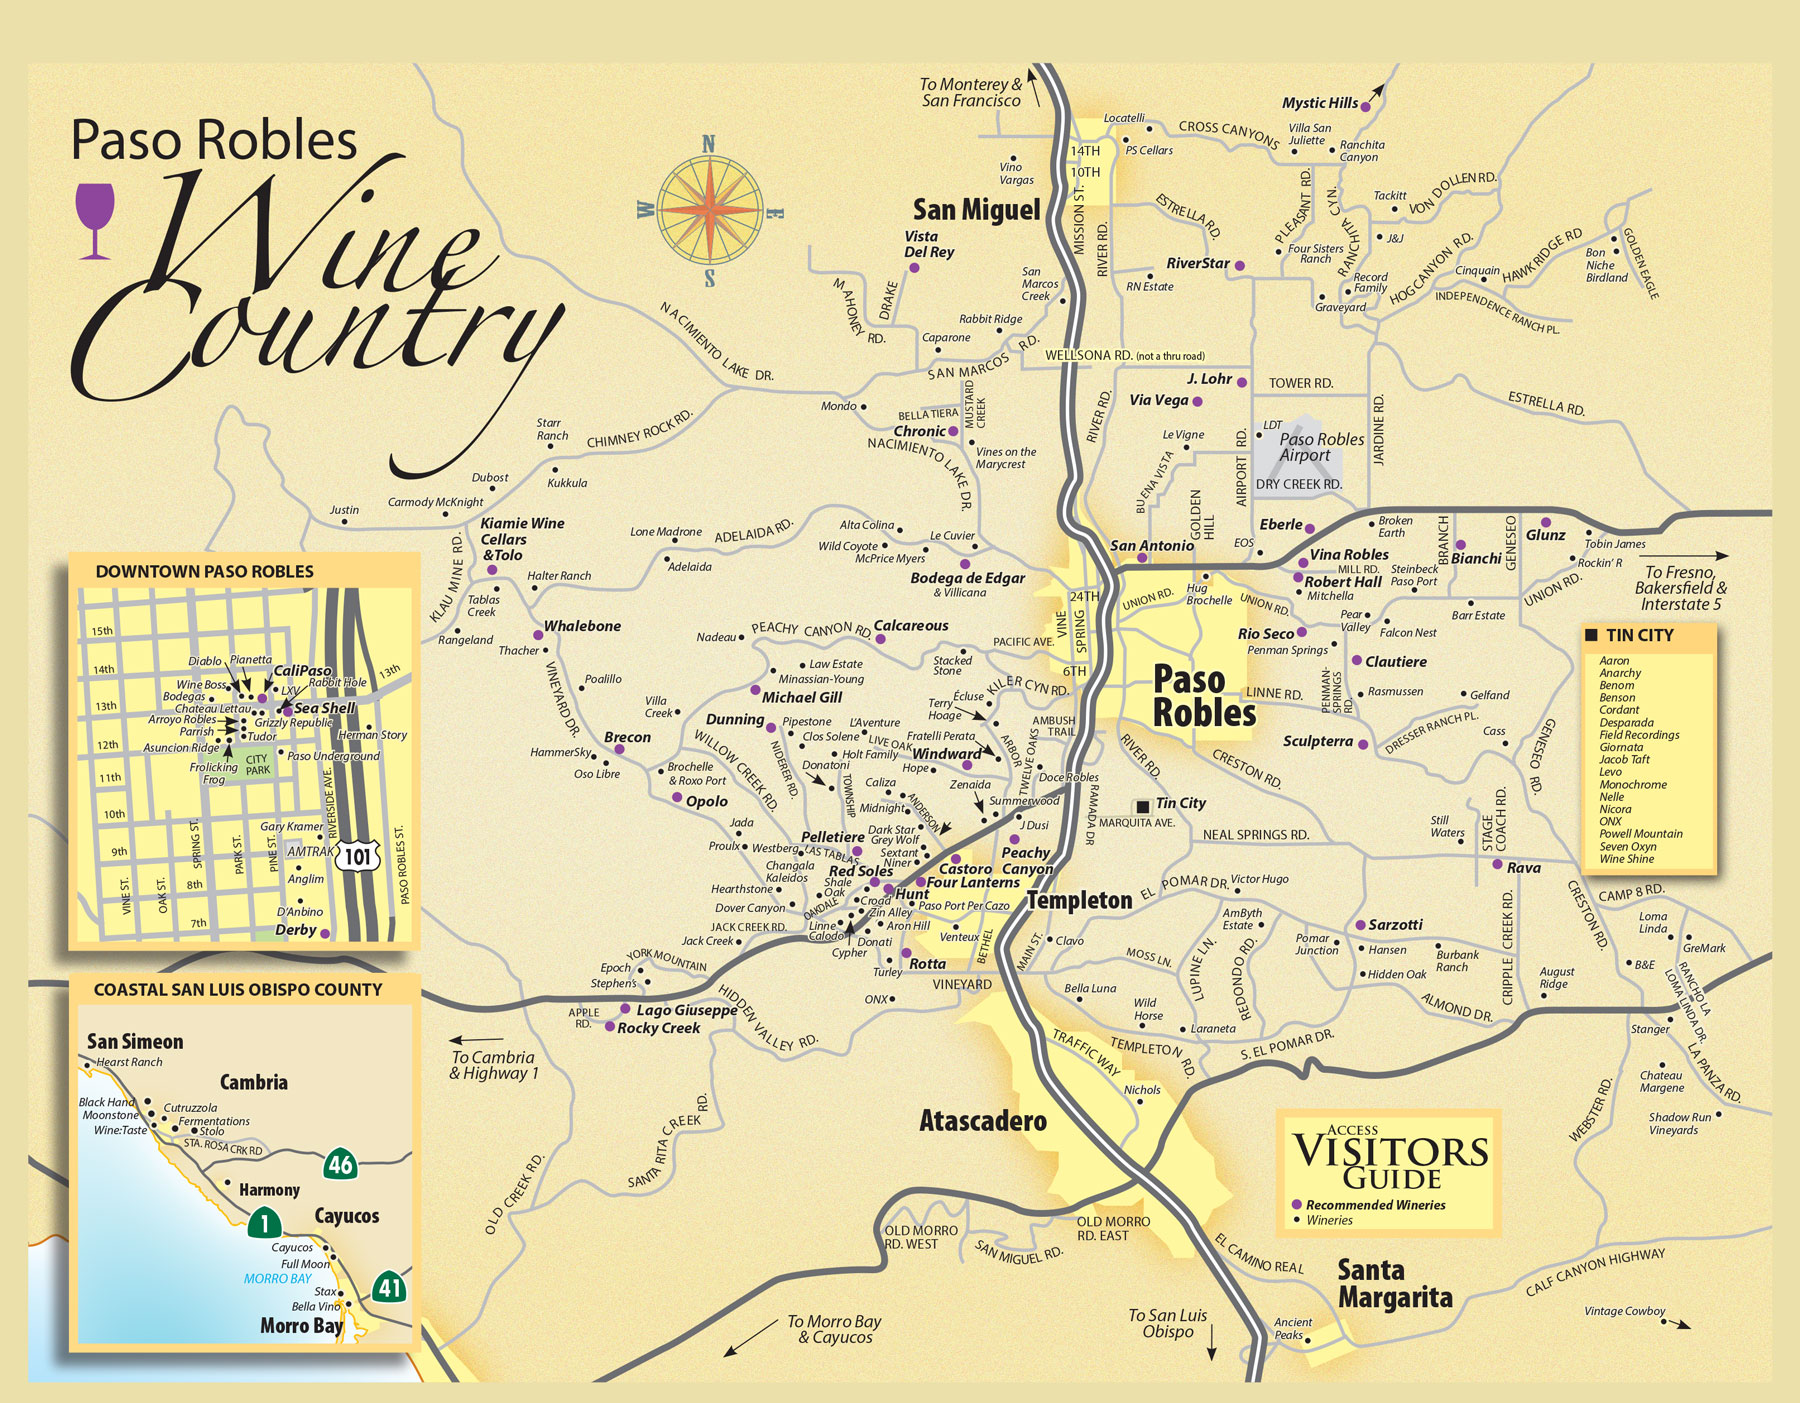 Paso Robles Wine Map Paso Robles Wine Tasting Map   Paso Robles Daily News